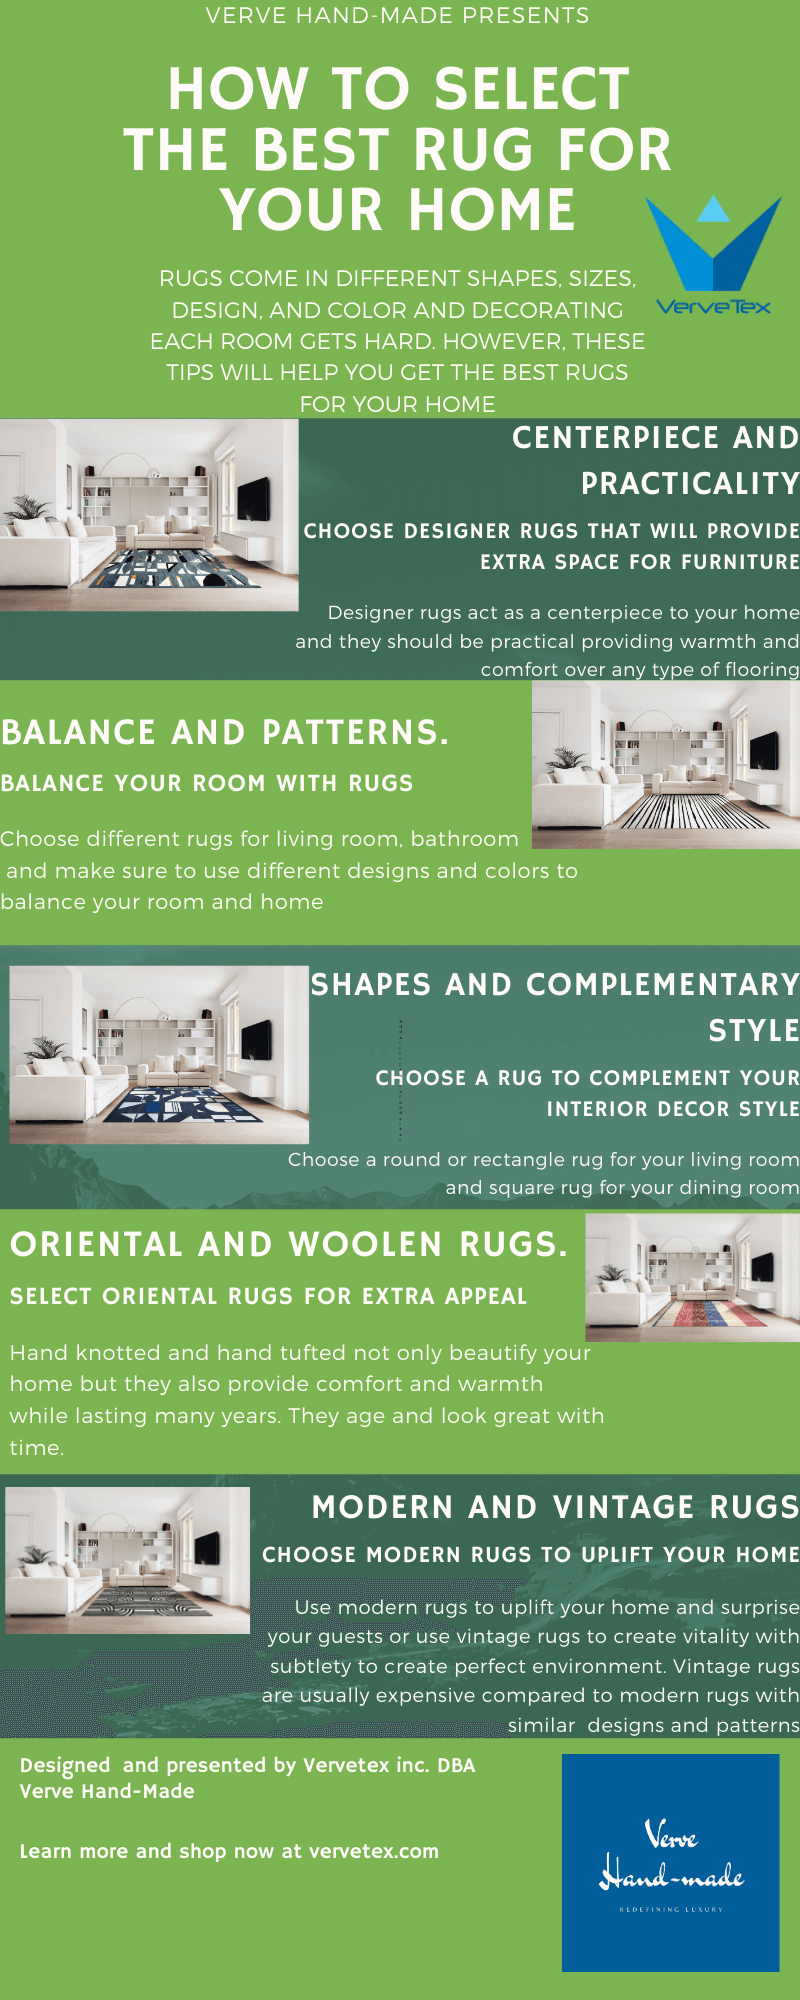 Infographic on how to select the best rug for your home by verve hand-made